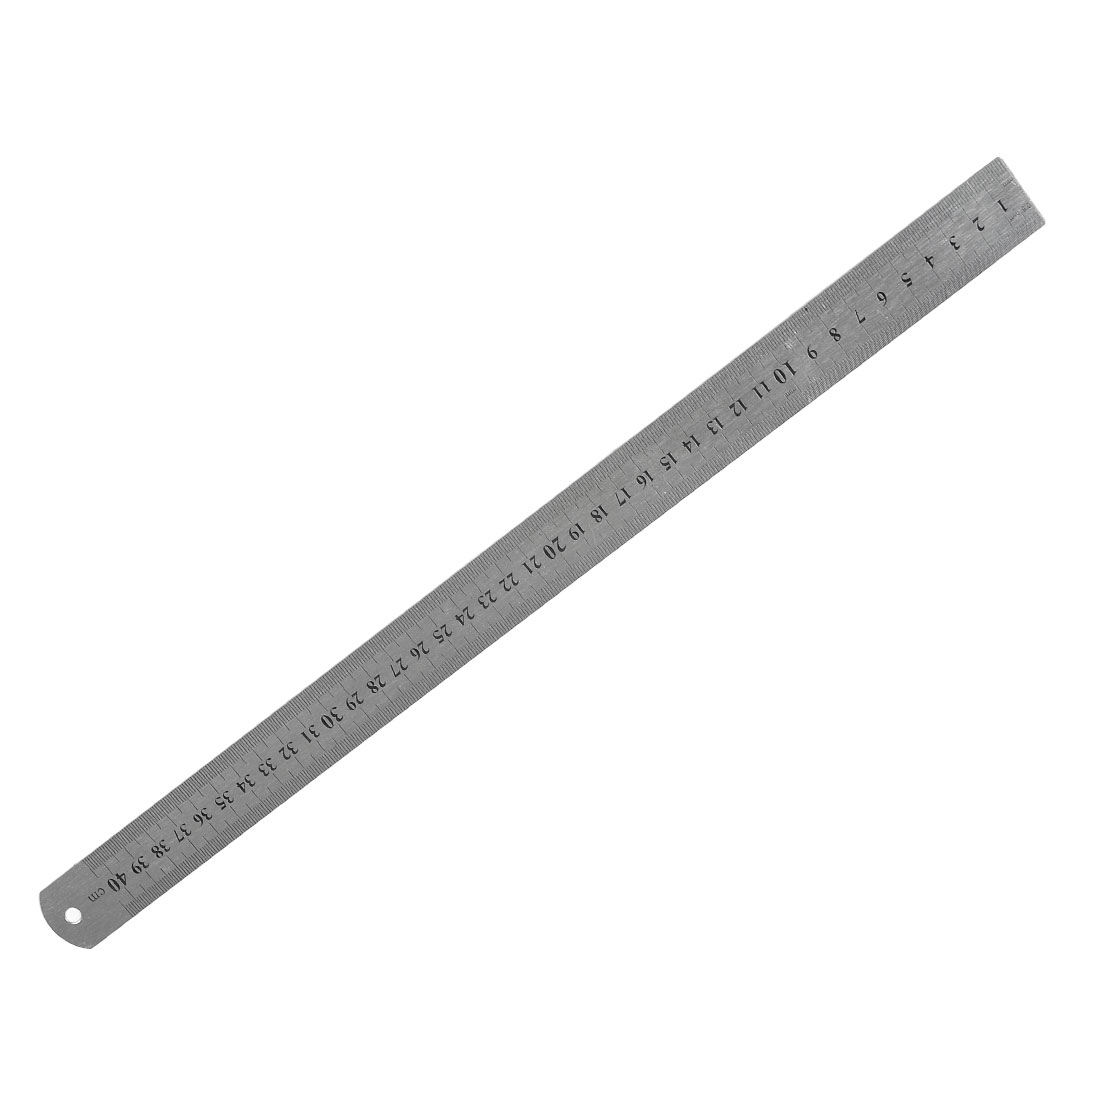 Stainless Steel 16 Inch Straight Ruler Measuring Kit Metric 40cm